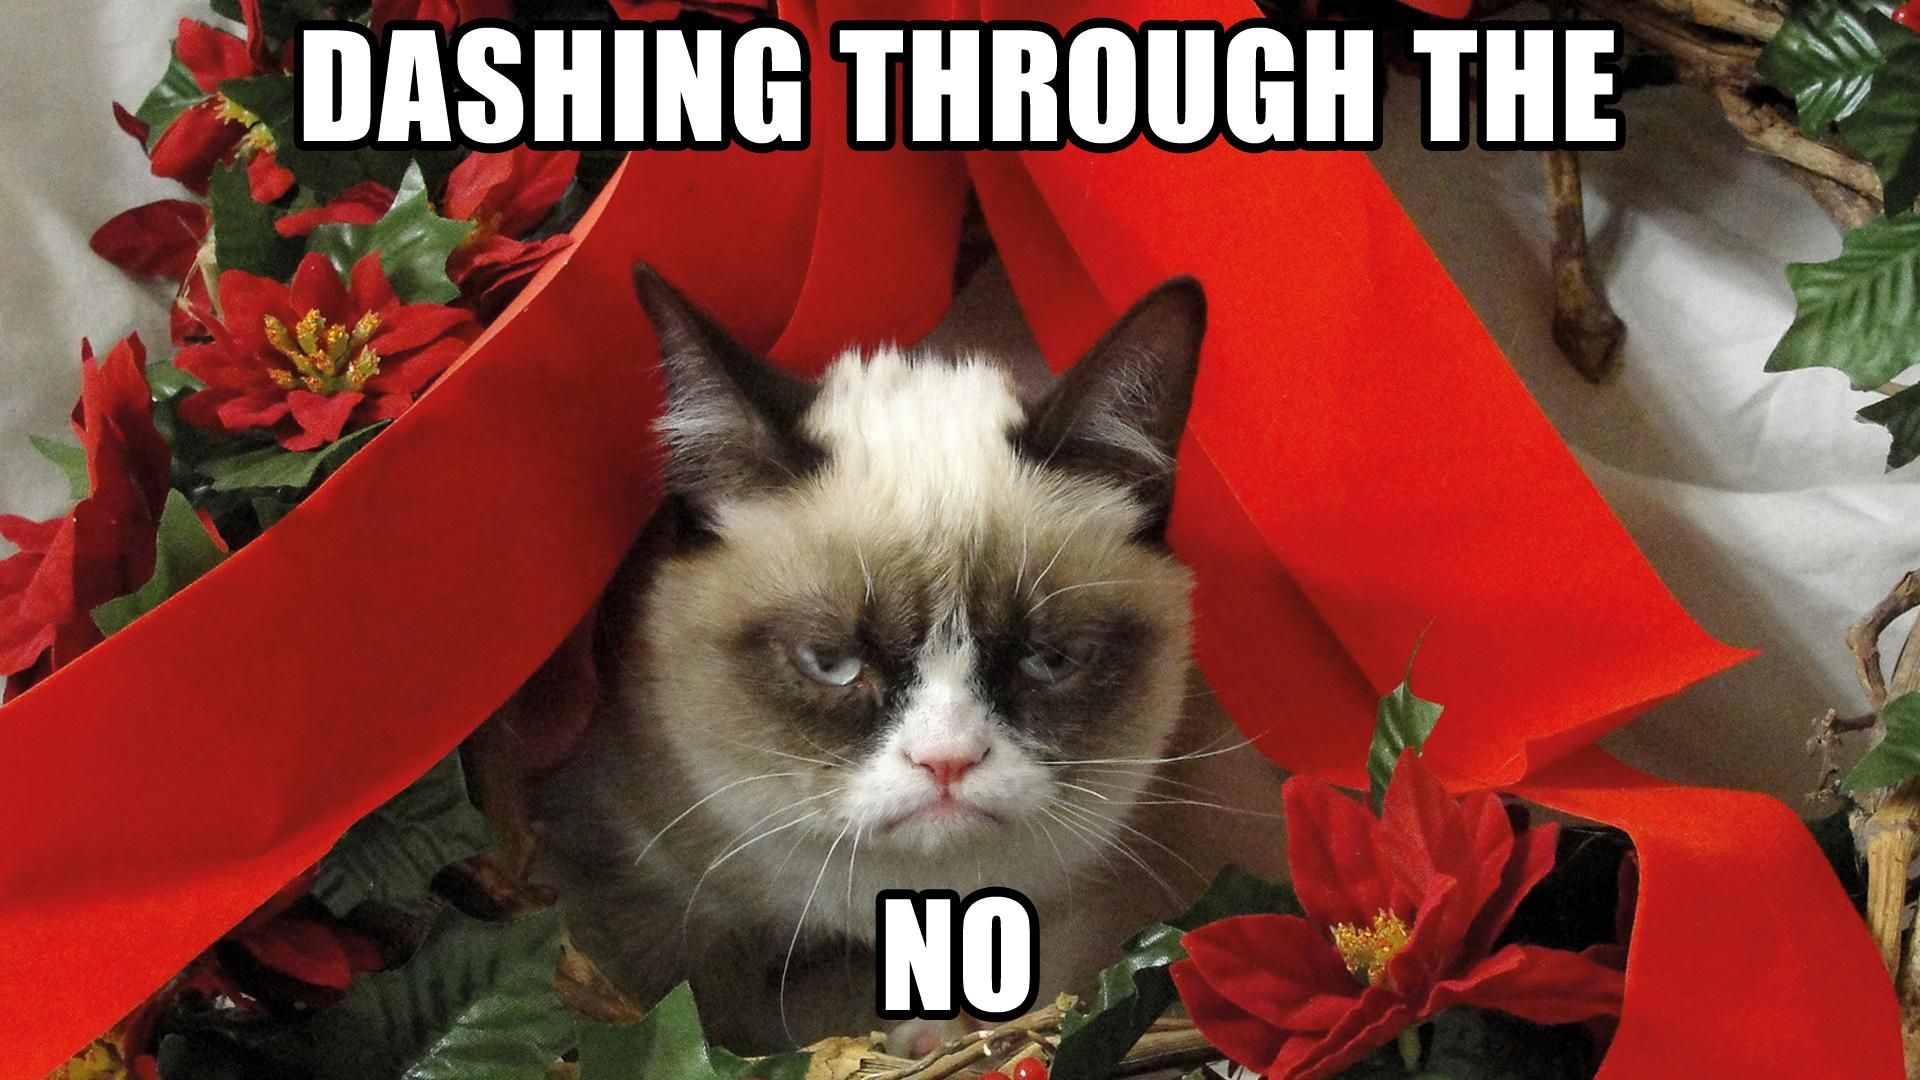 b1dda5119e6e1601dca114af0236209d 15 christmas memes that prove it's the worst holiday thetalko